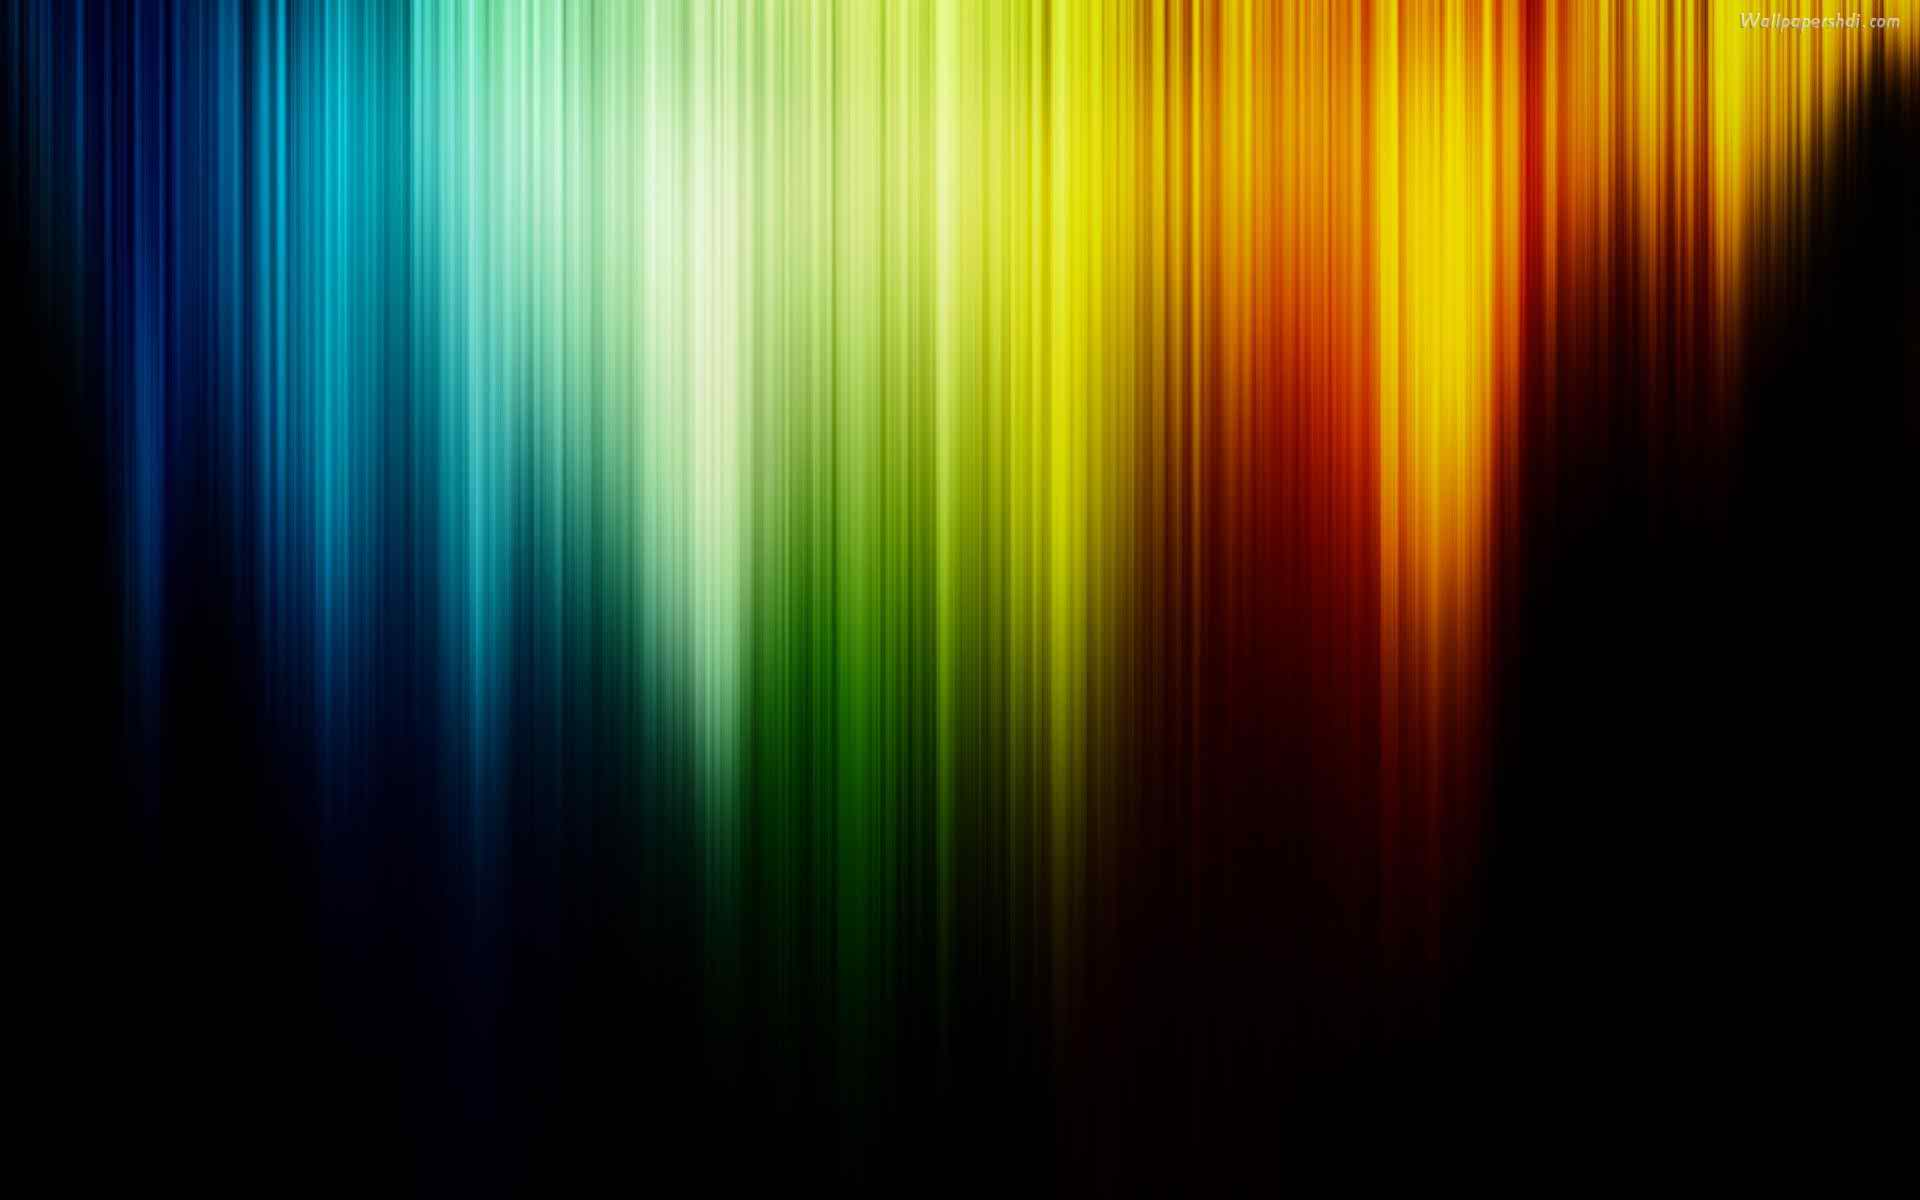 Wallpaper Full Hd 1080p 3d Hd Rainbow Wallpapers Hd Wallpapers Pulse